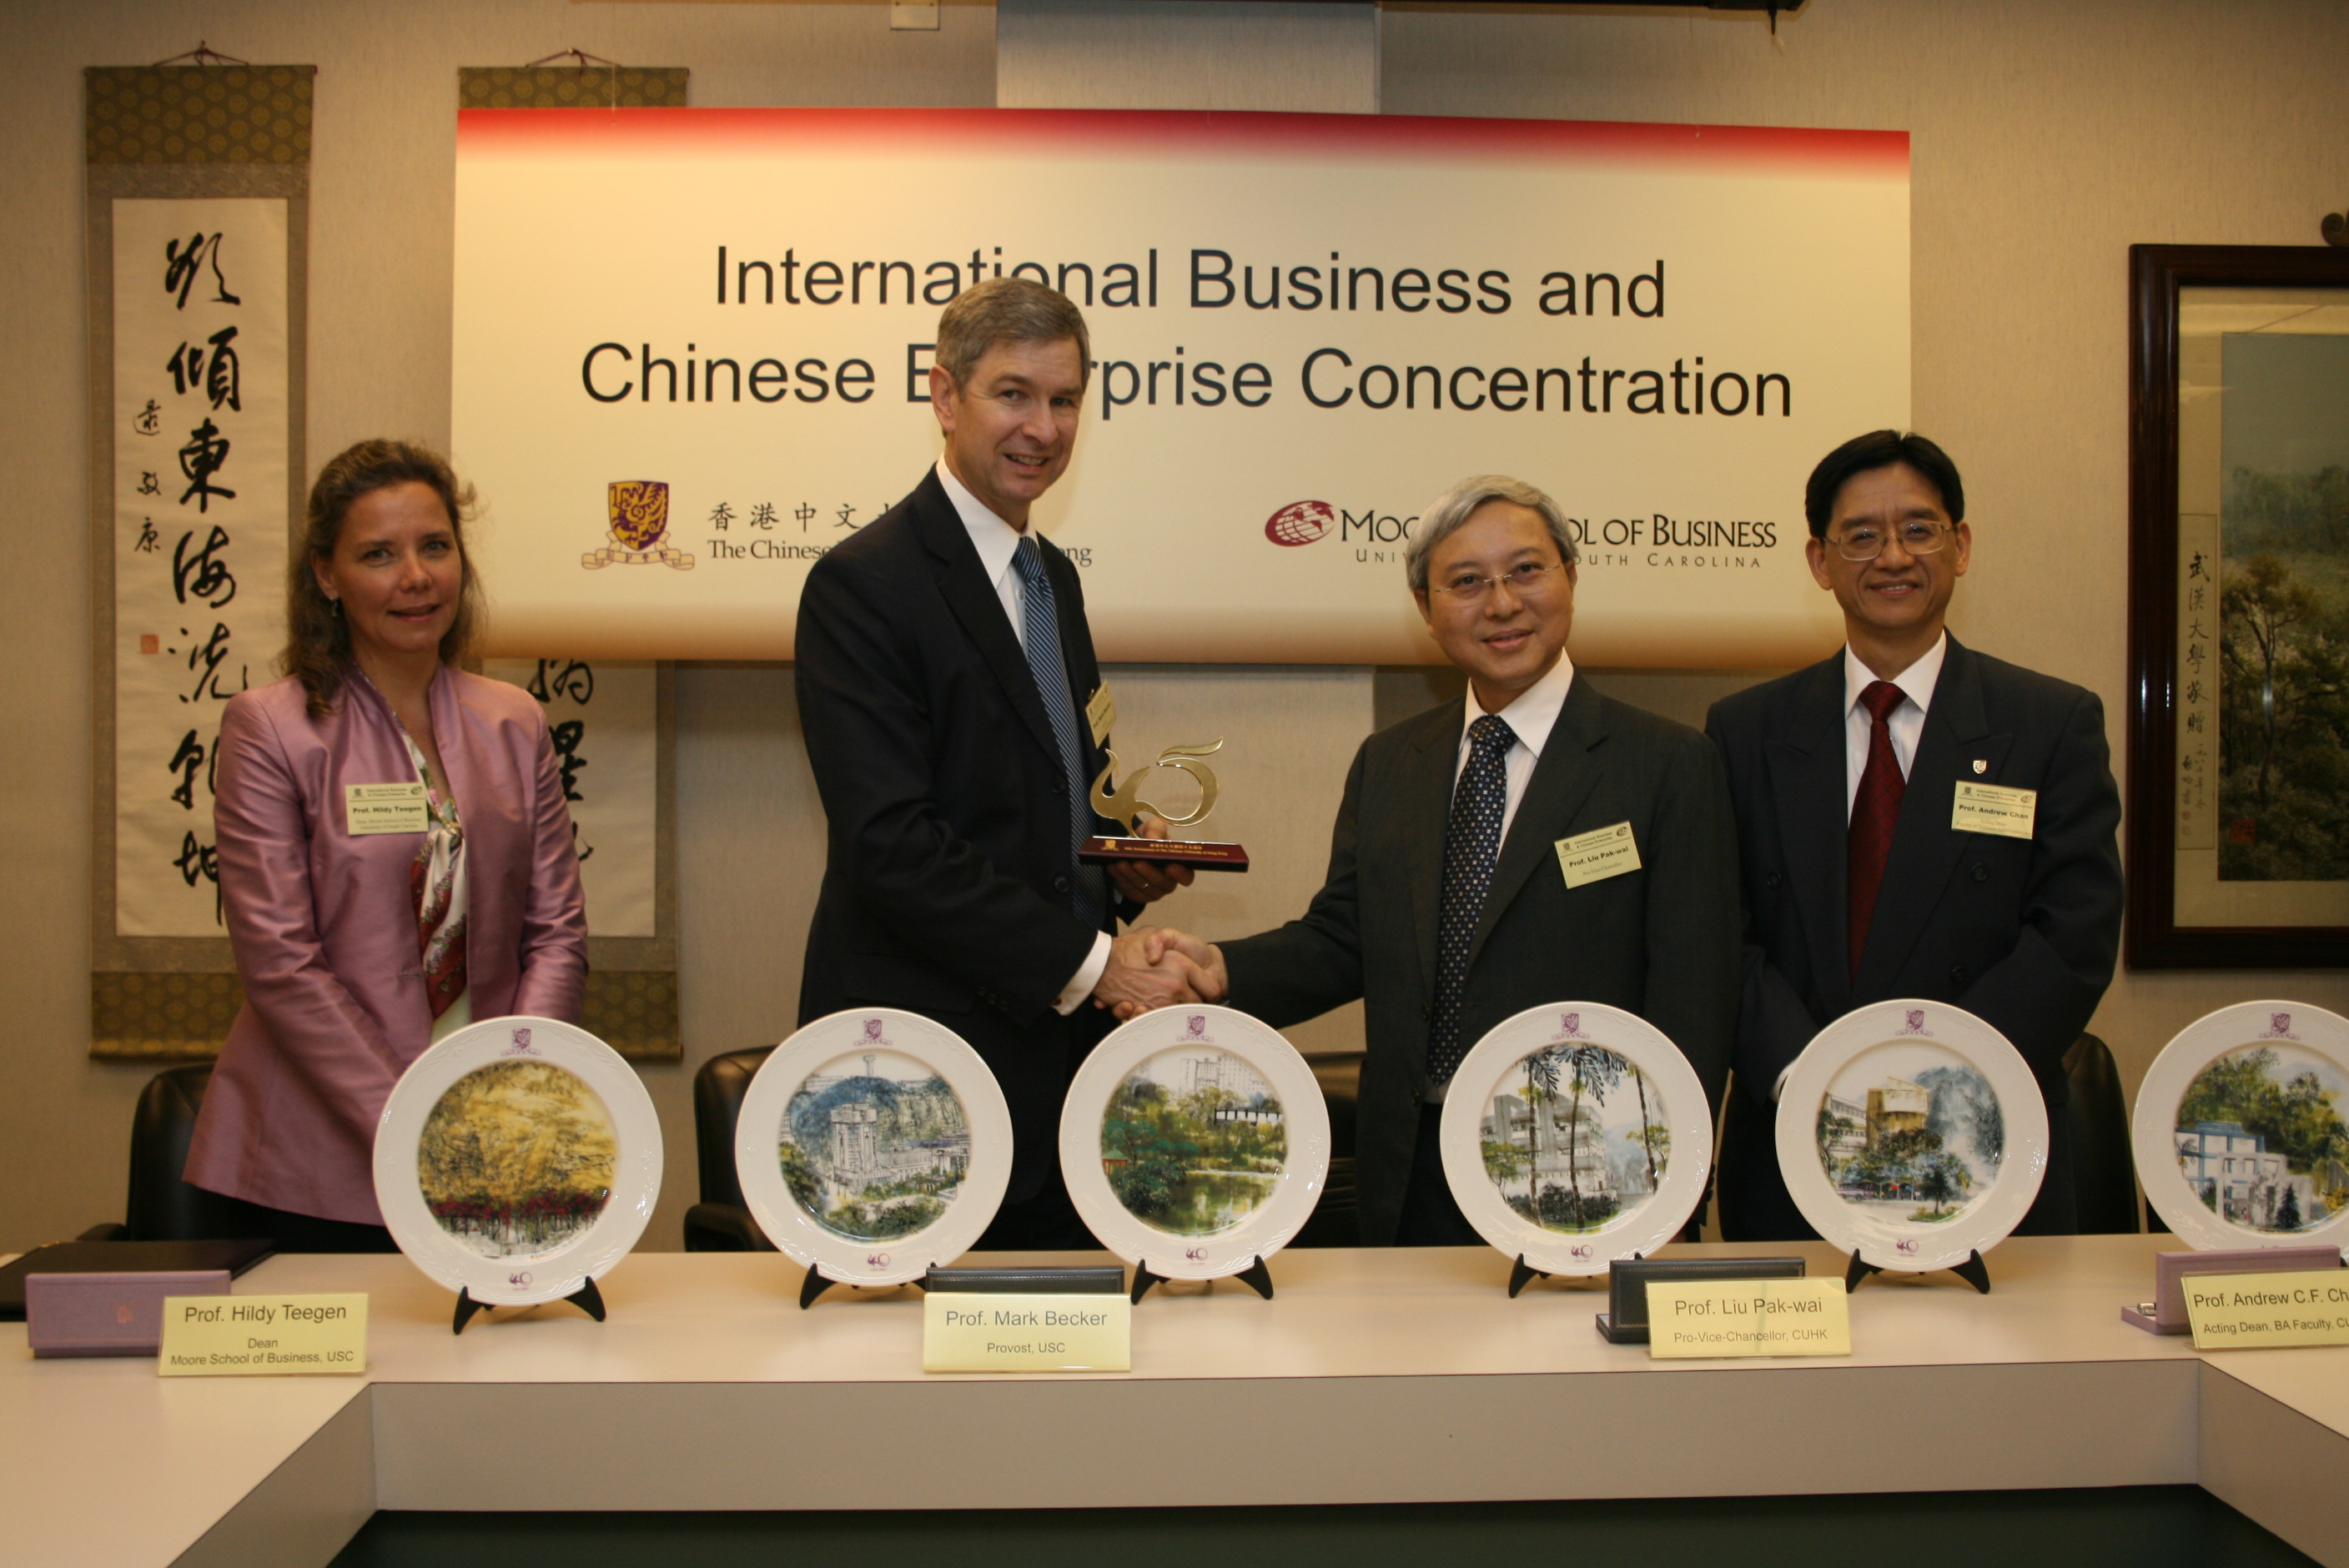 Prof. Prof. Liu Pak Wai, Pro-Vice-Chancellor of The Chinese University of Hong Kong (CUHK) presented CUHK 45th Anniversary souvenir to Prof. Mark Becker, Provost of the University of South Carolina. On the left is Prof. Hildy J. Teegen, Dean, Moore School of Business, University of South Carolina and on the right is Prof. Andrew Chan, Acting Dean, Faculty of Business Administration, CUHK.